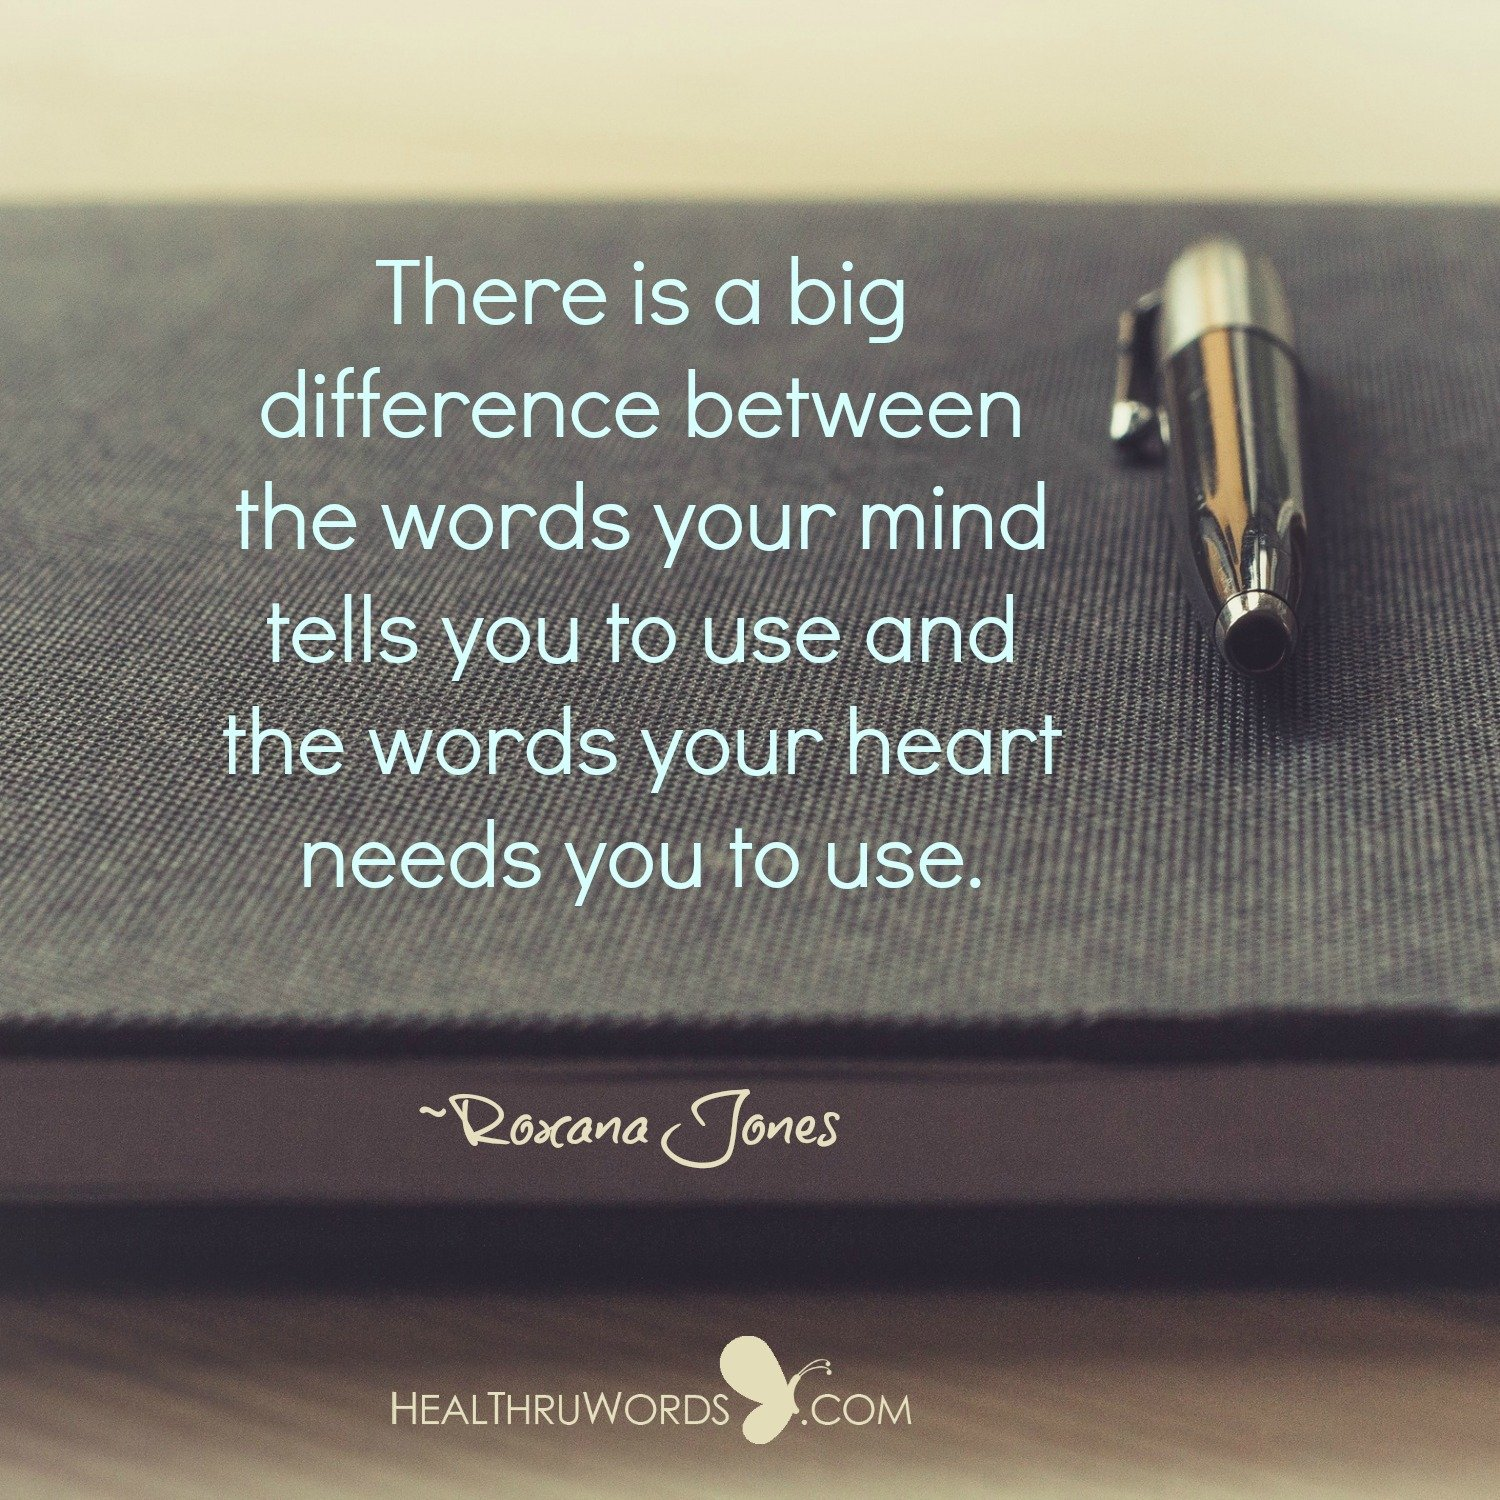 Inspirational Image: The words that you use